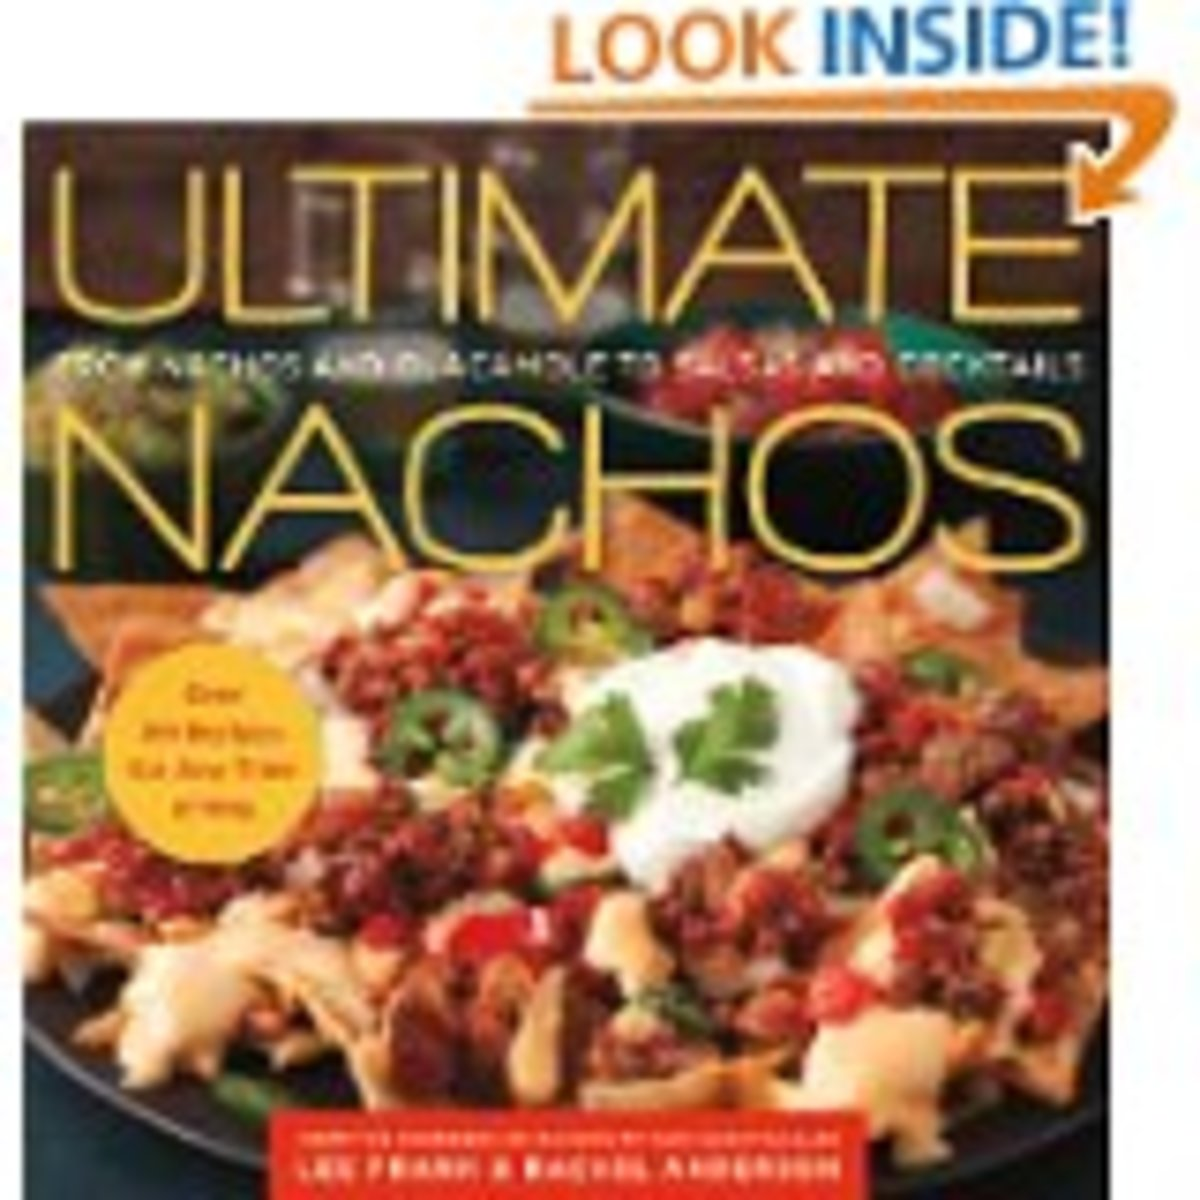 All-inclusive Nacho recipes from finger food nachos, main course nachos,  to desert nachos and cocktail recipes to go with.